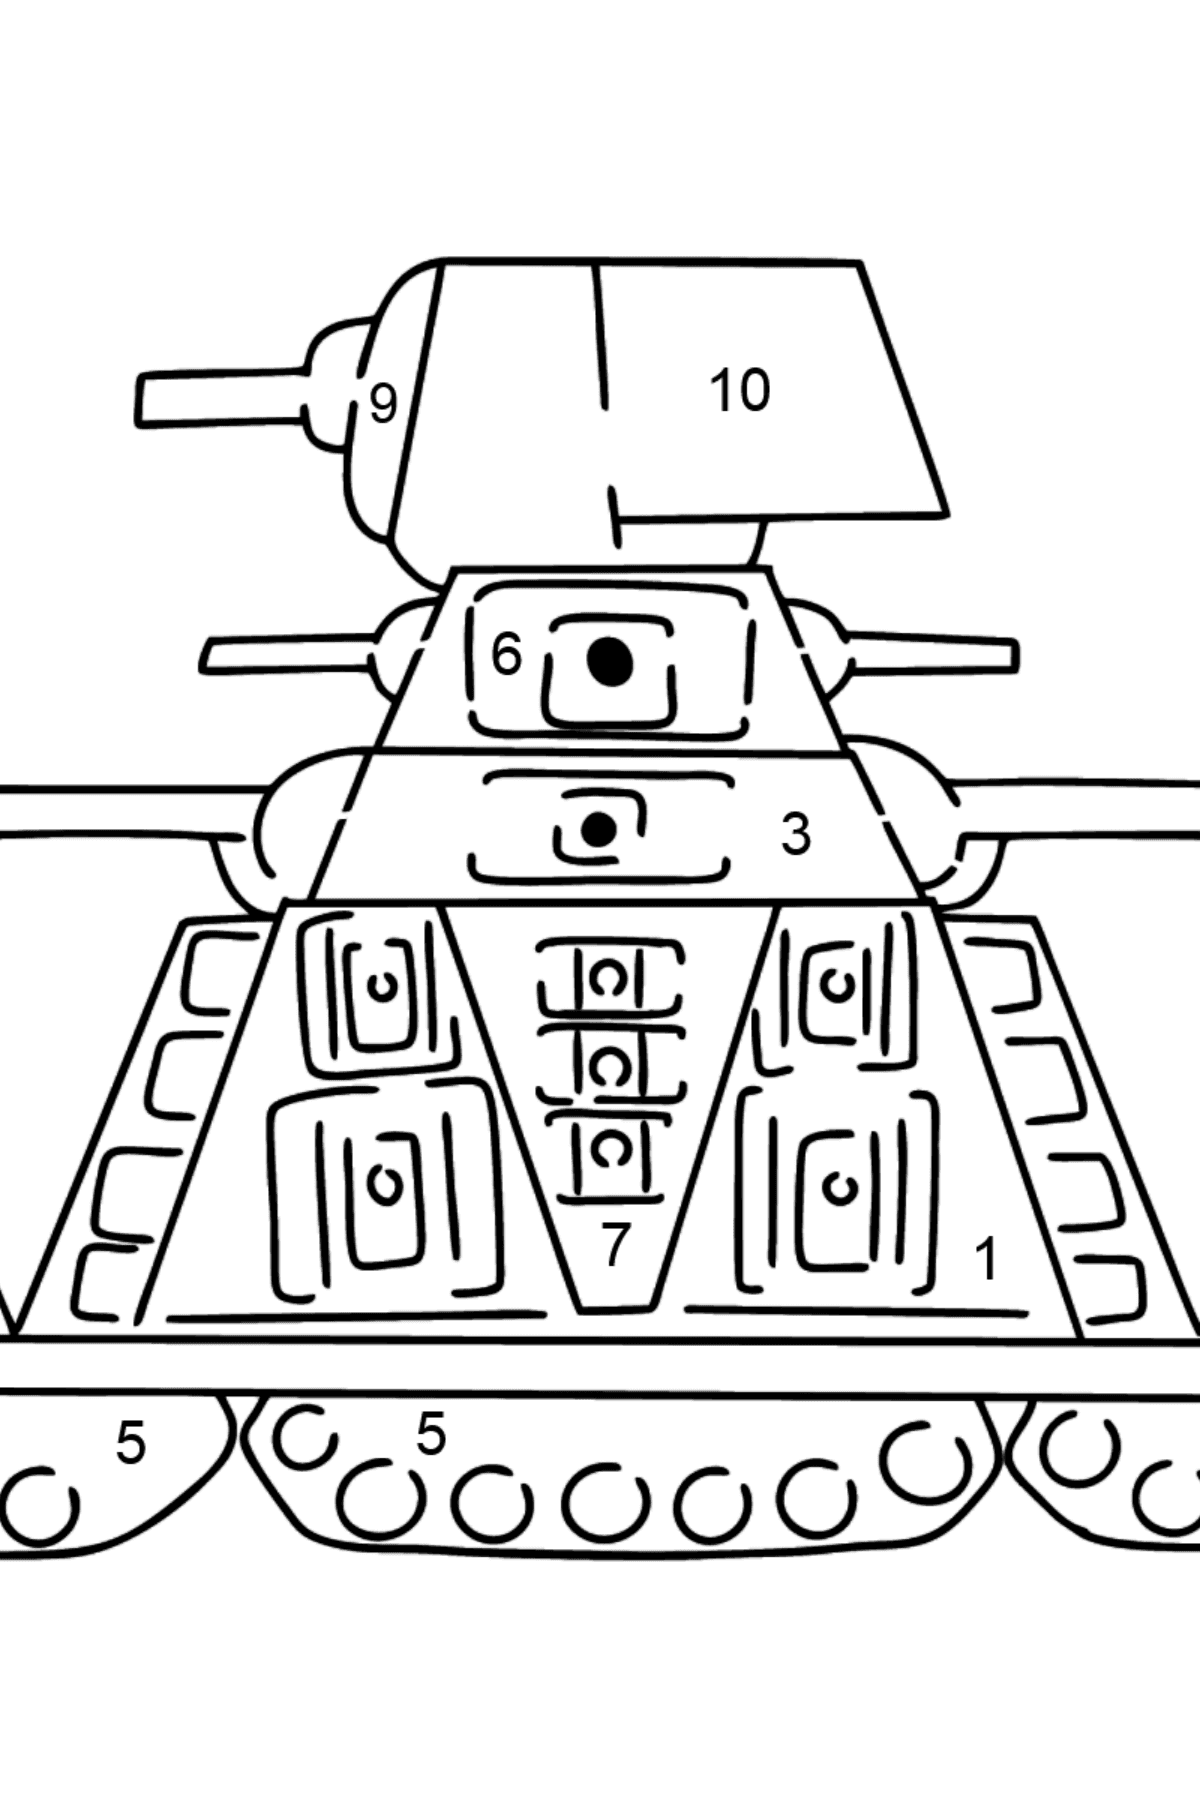 Tank KV 44 coloring page - Coloring by Numbers for Kids